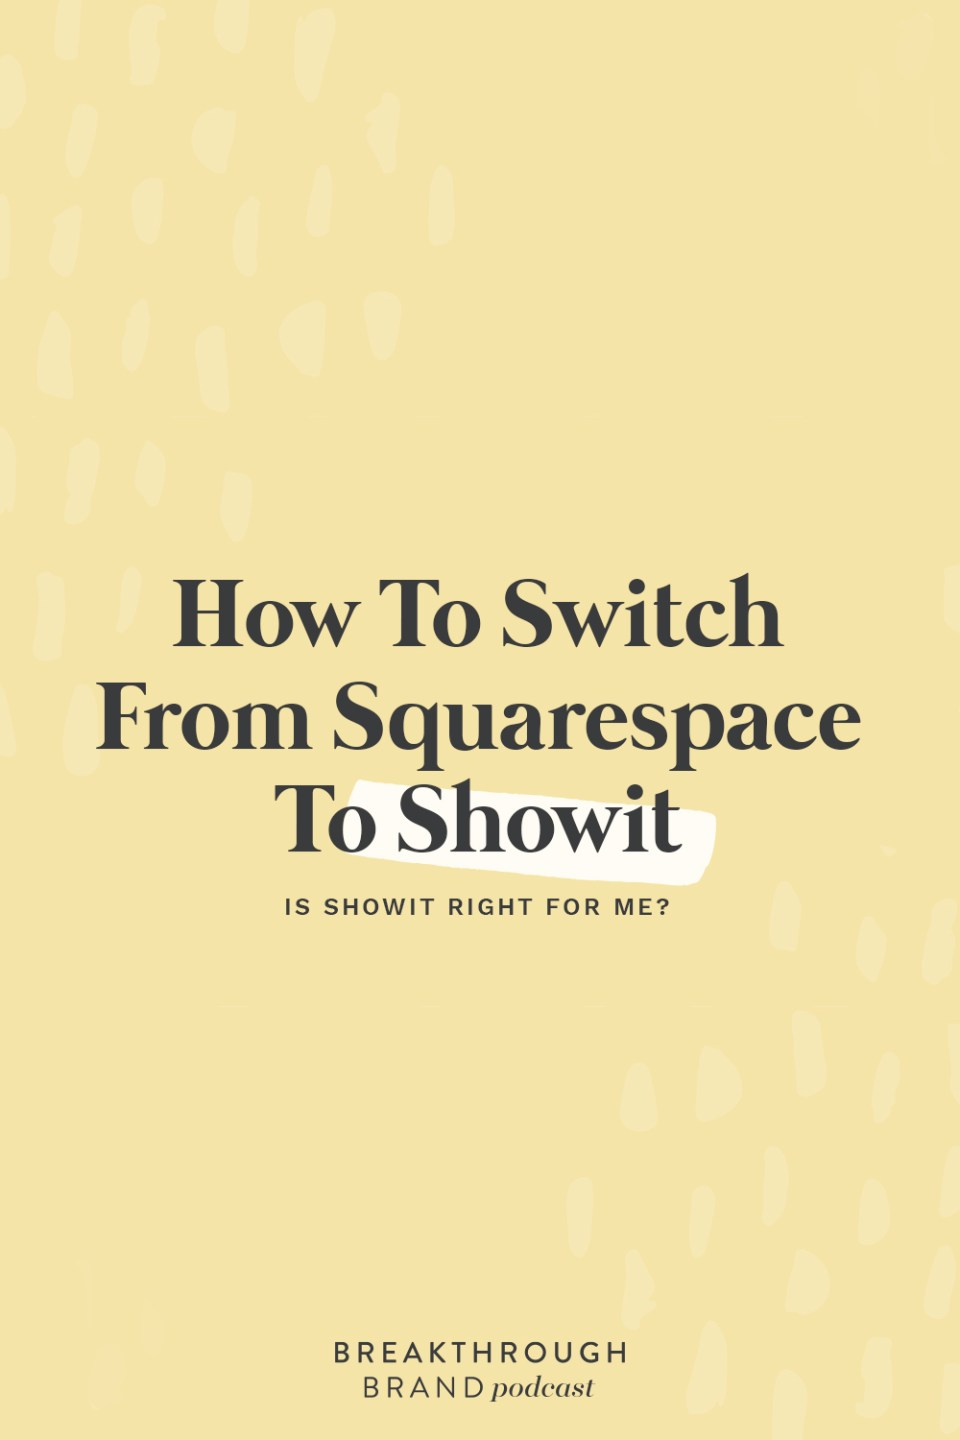 Learn how to switch from Squarespace to Showit and find out which is right for you.